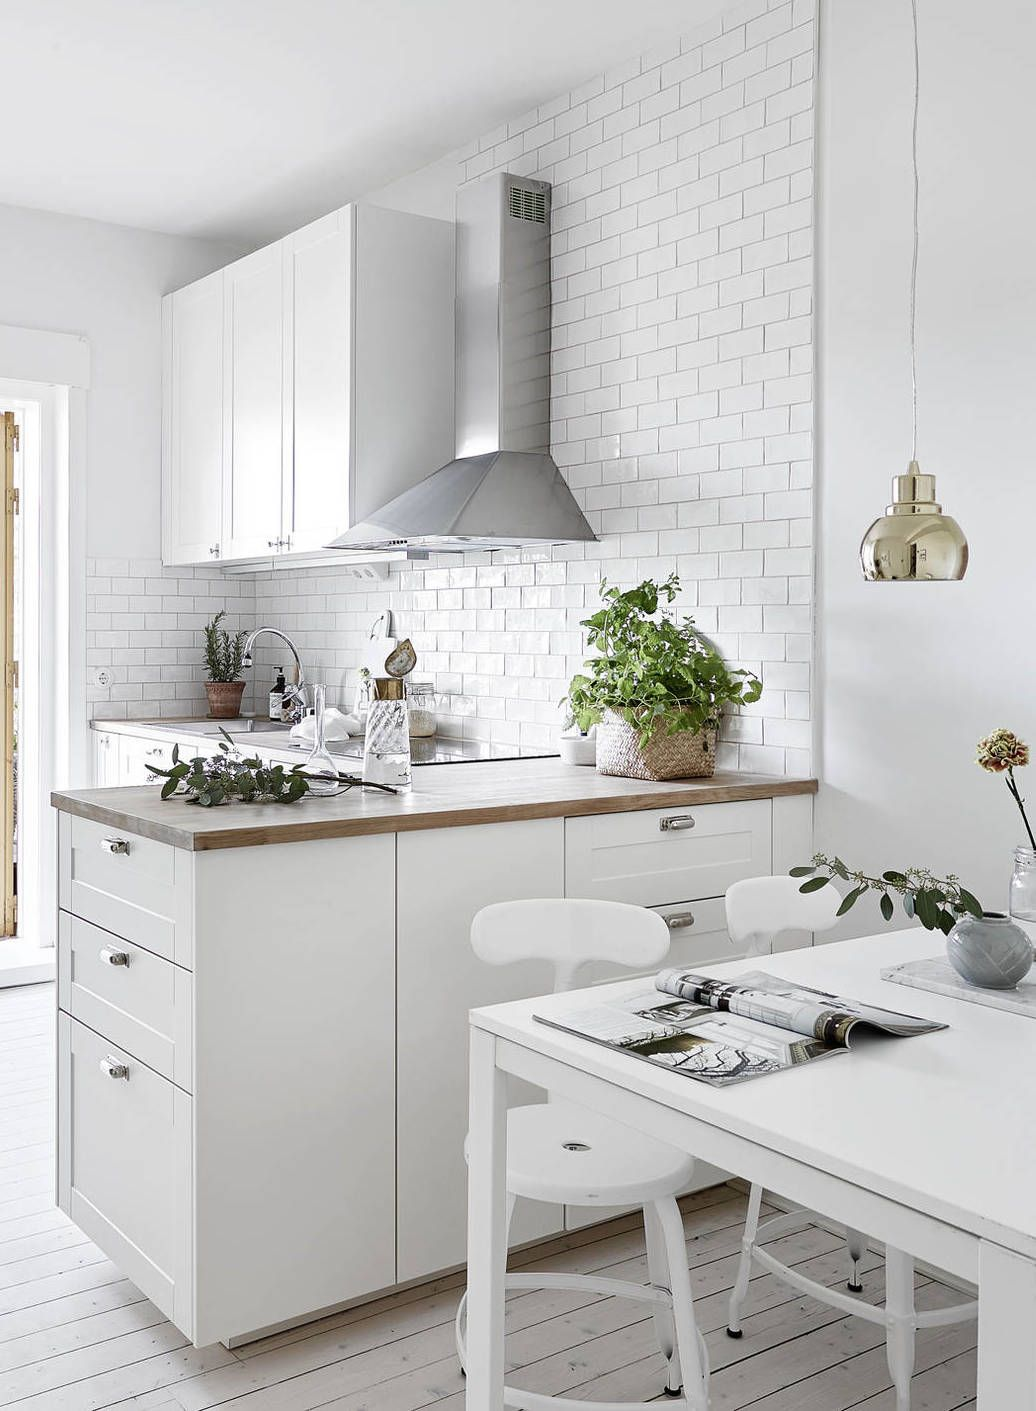 Cozy and light | Cozy, Kitchens and Lights